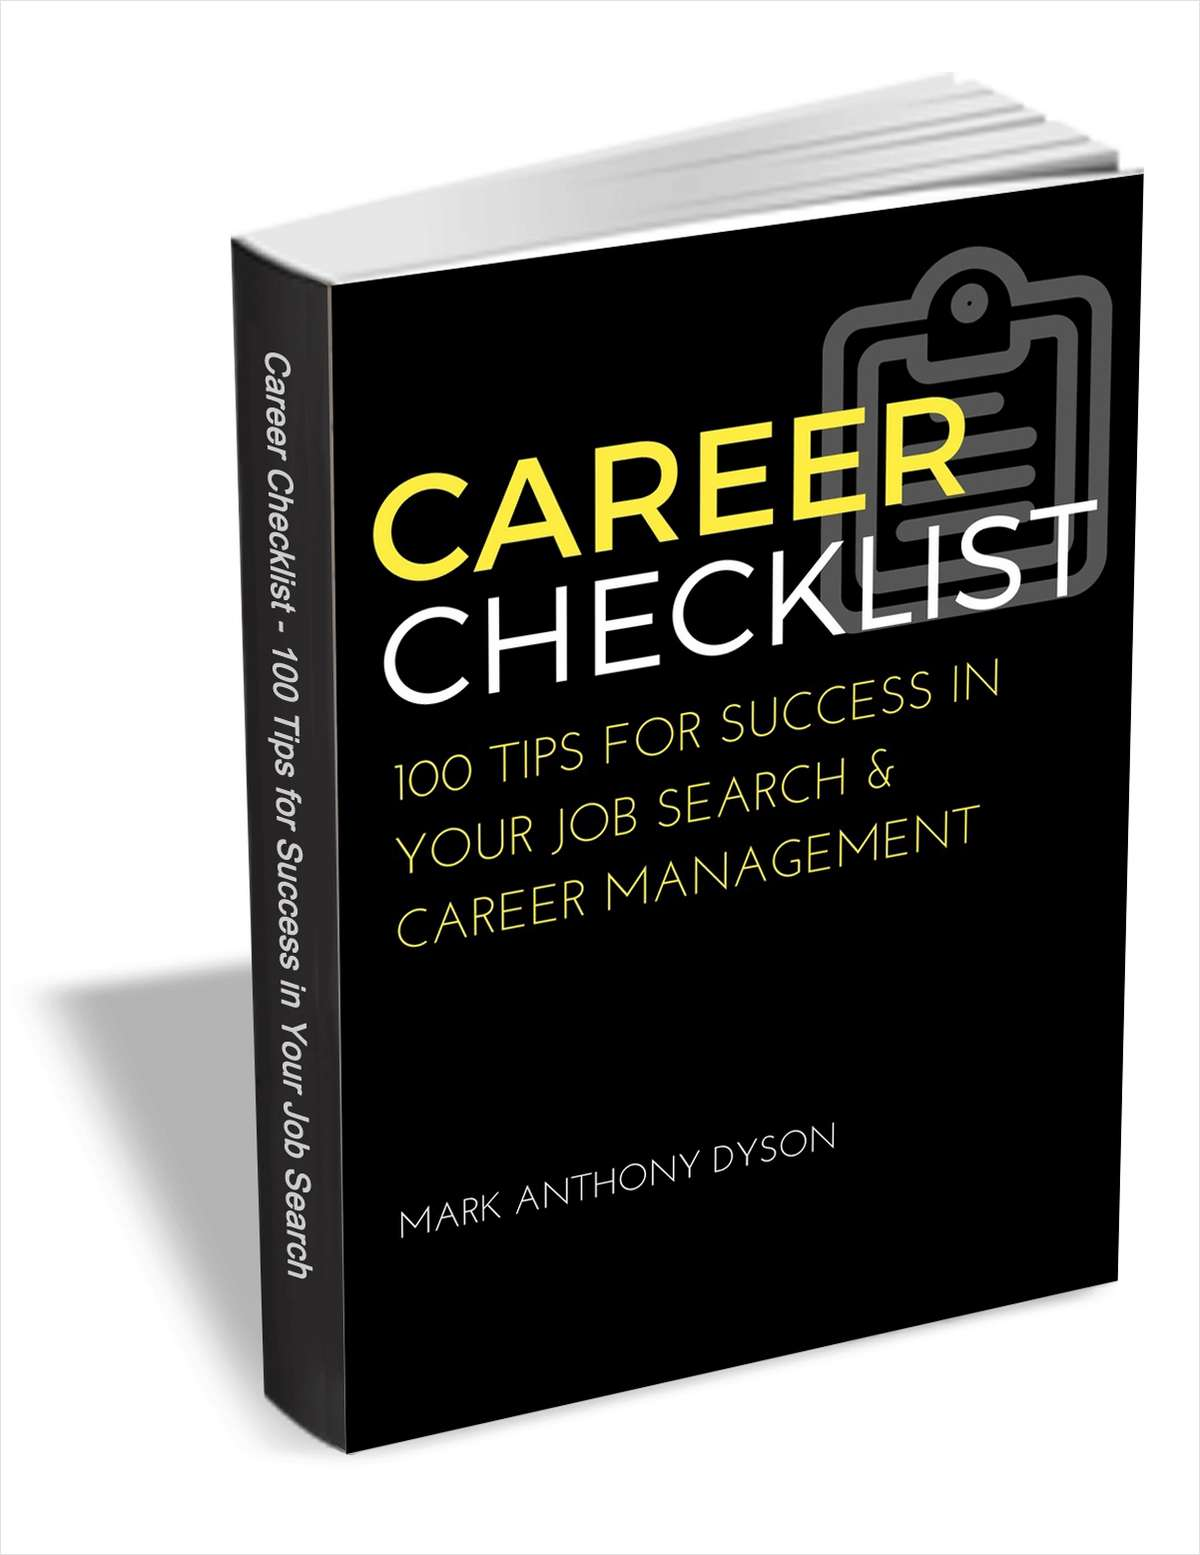 Career Checklist - 100 Tips for Success in Your Job Search & Career Management